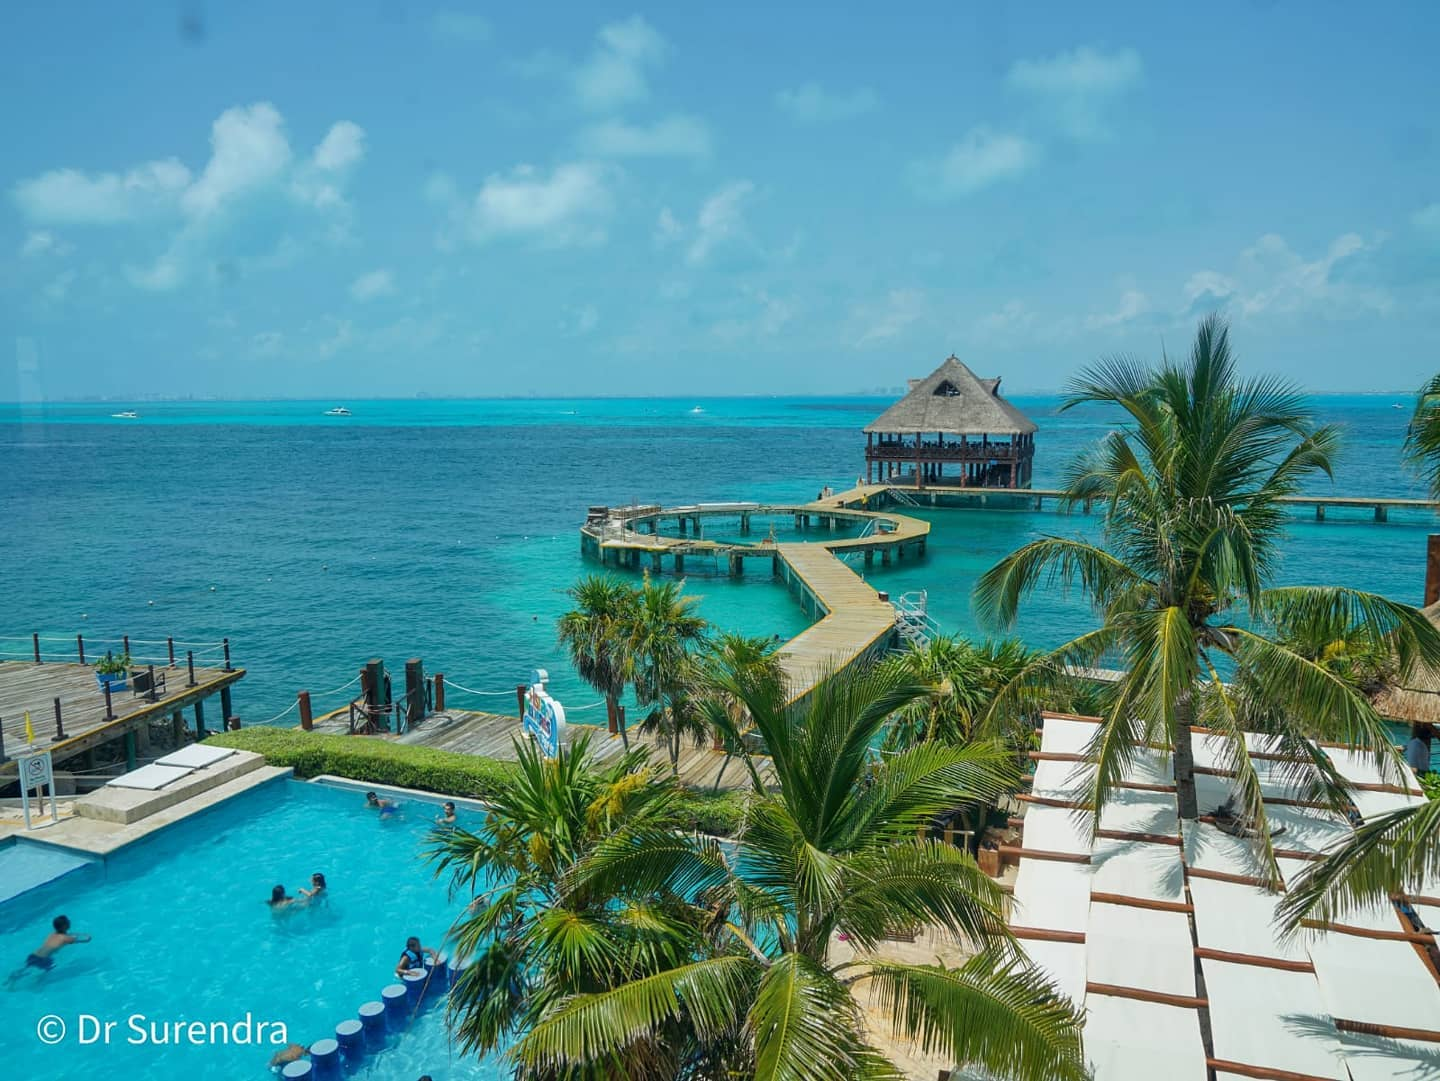 *My Picture of the day* Dolphin island (Isla Mujeres) at Cancun, Mexico - swim and interact with sea animals like Dolphins, Manatees and Sea lions. The sea and surroundings are spectacular. ***** *Dr.Surendra* — at Isla Mujeres, Punta Sur